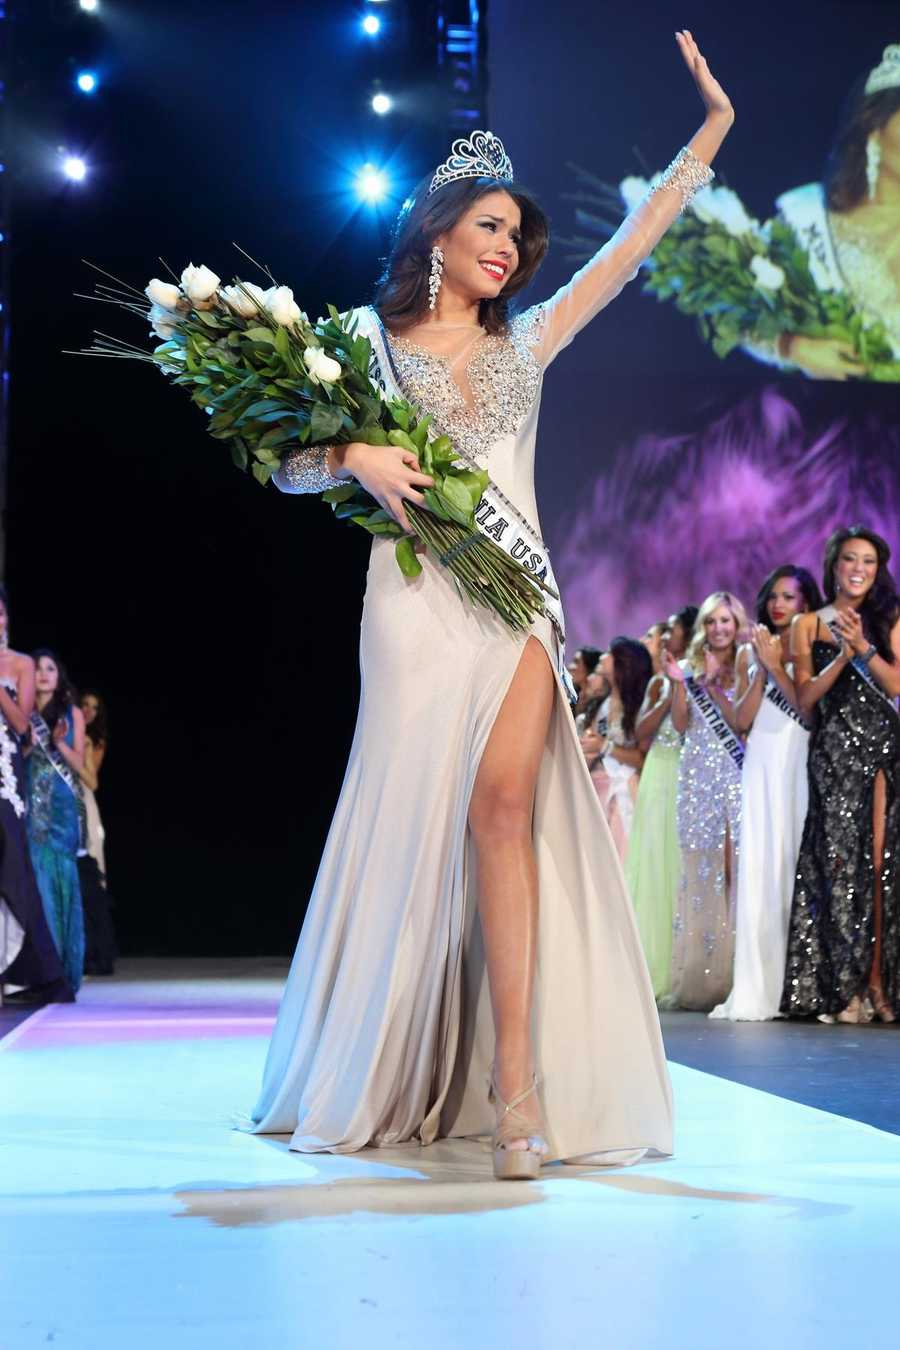 Miss Greater San Diego Mabelynn Capeluj smiles after she is crowned Miss California USA 2013.